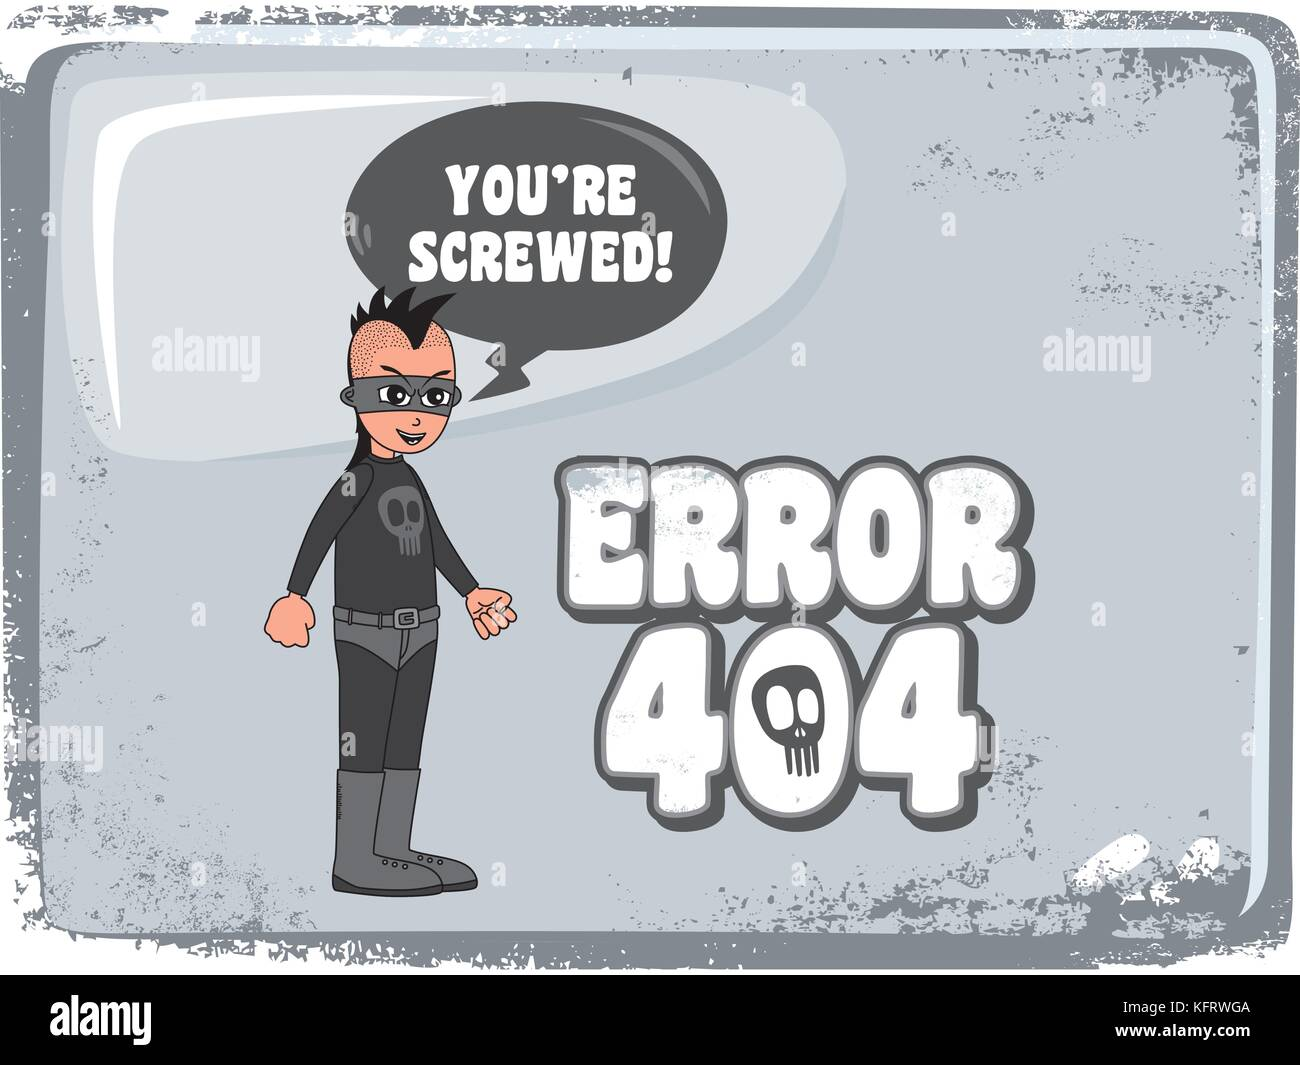 404 Page Not Found Imágenes De Stock & 404 Page Not Found Fotos De ...